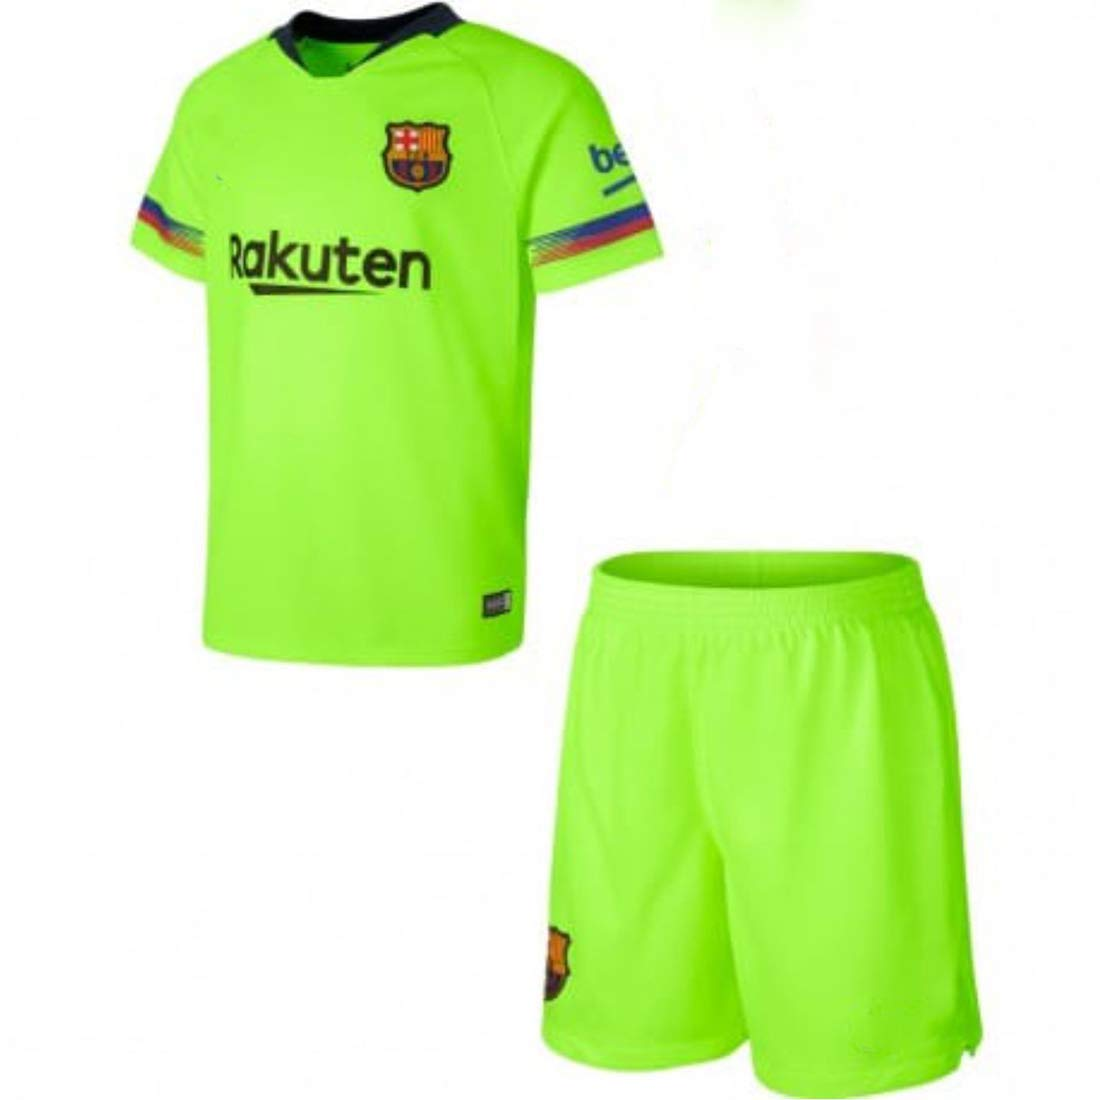 best website 7ea5f 5f206 GOLDEN FASHION Men's Barcelona Away Jersey Kit T-shirt and Shorts with All  Logos in Place (Small-38 Inches, Neon)